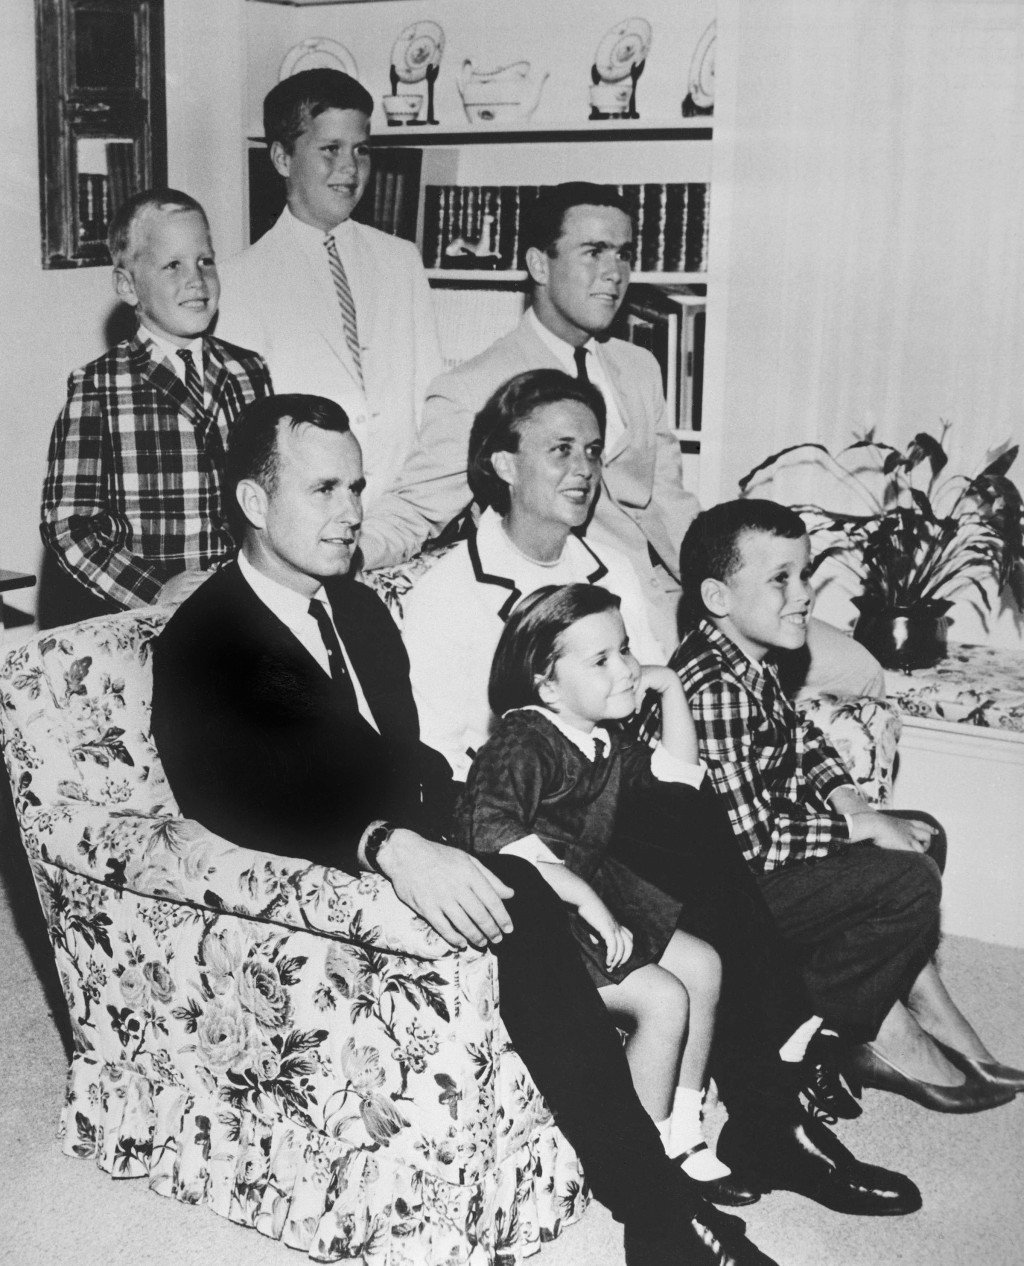 FILE - In this 1964 file photo, George H.W. Bush sits on couch with his wife, Barbara, and their children. George W. Bush sits at right behind his mot